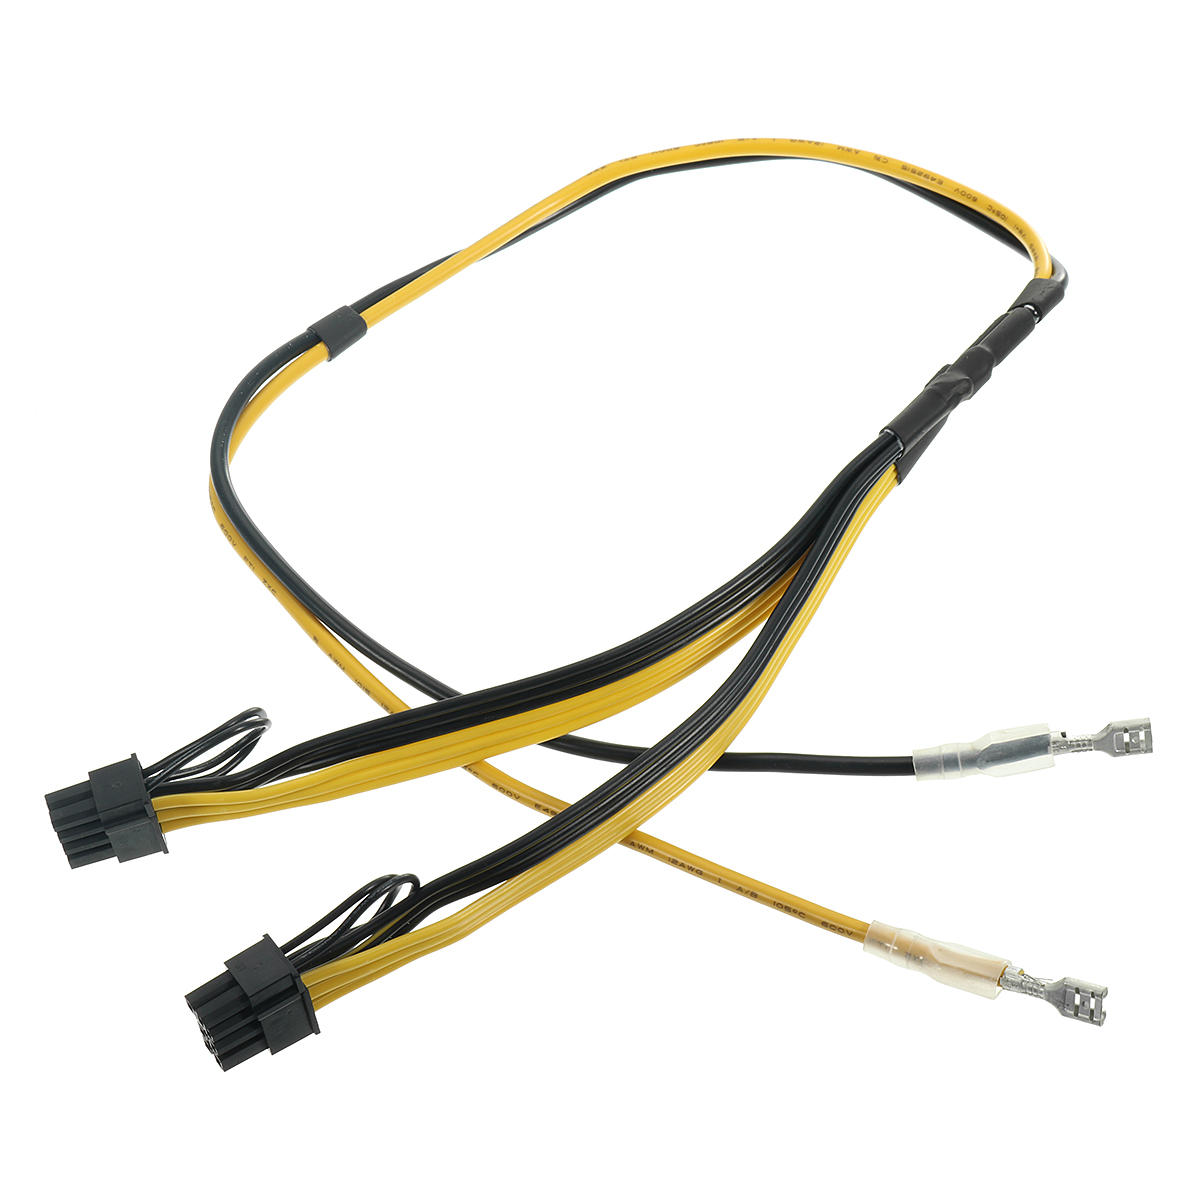 Dual PCIe 8pin Power Cord 6+2pin DIY Splitter Power Cable For Graphics  Video Card RIG Miner